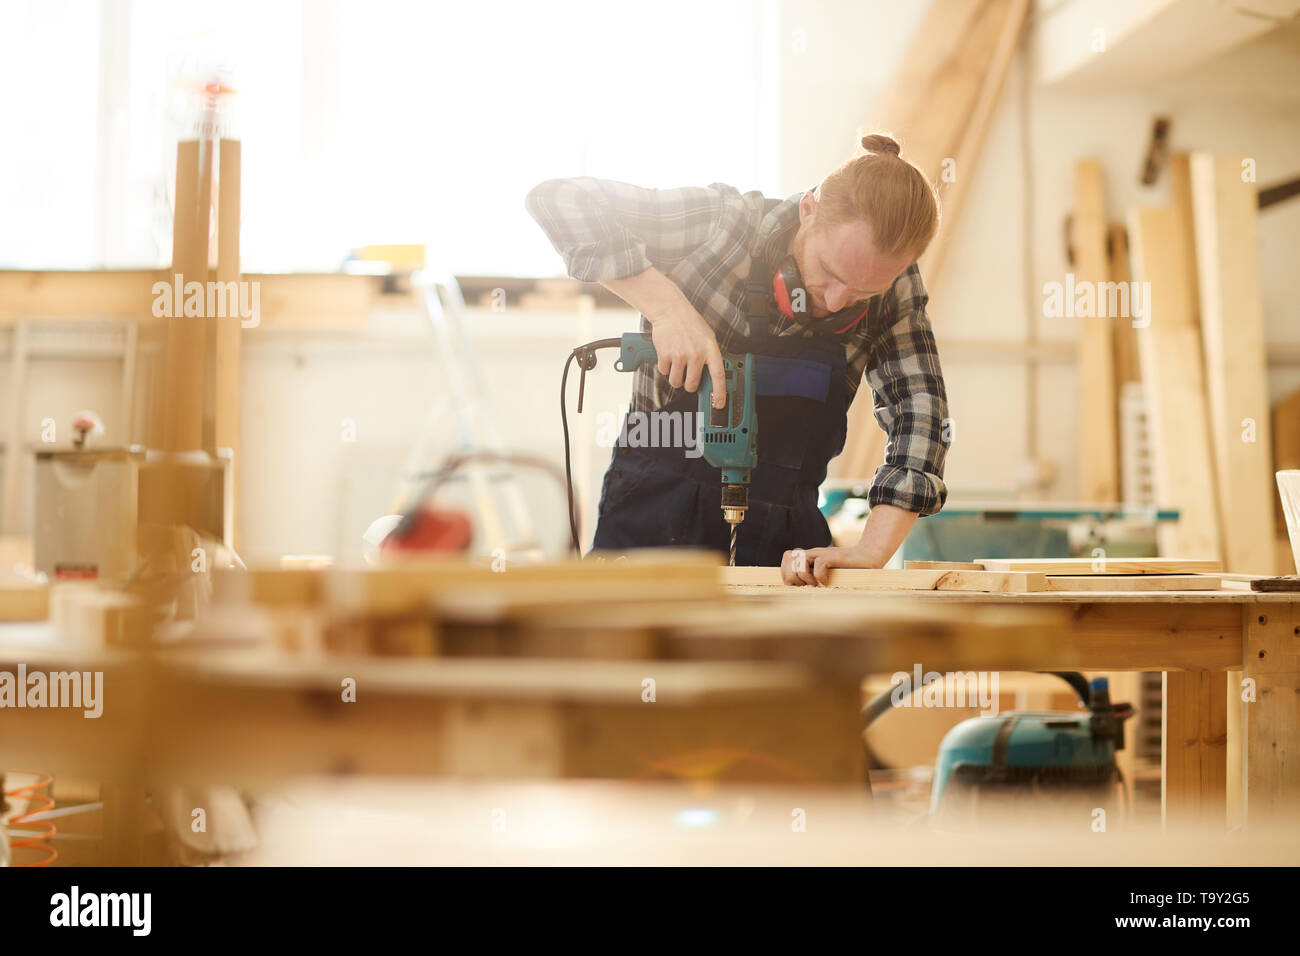 Waist up portrait of red haired carpenter drilling wood while working in joinery lit by sunlight, copy space - Stock Image